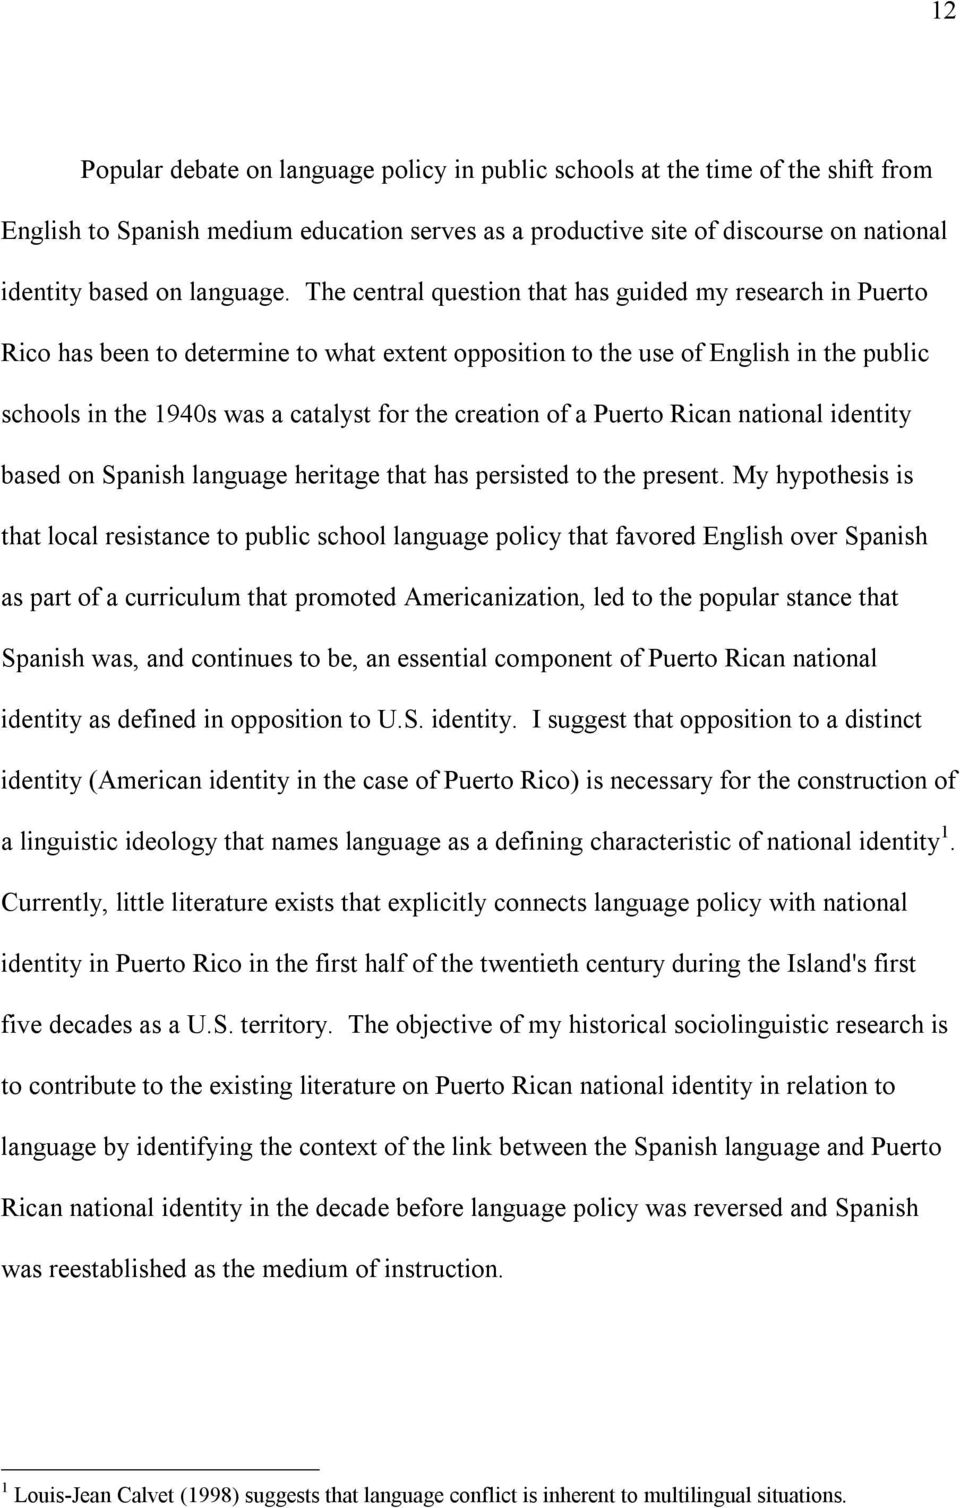 The central question that has guided my research in Puerto Rico has been to determine to what extent opposition to the use of English in the public schools in the 1940s was a catalyst for the